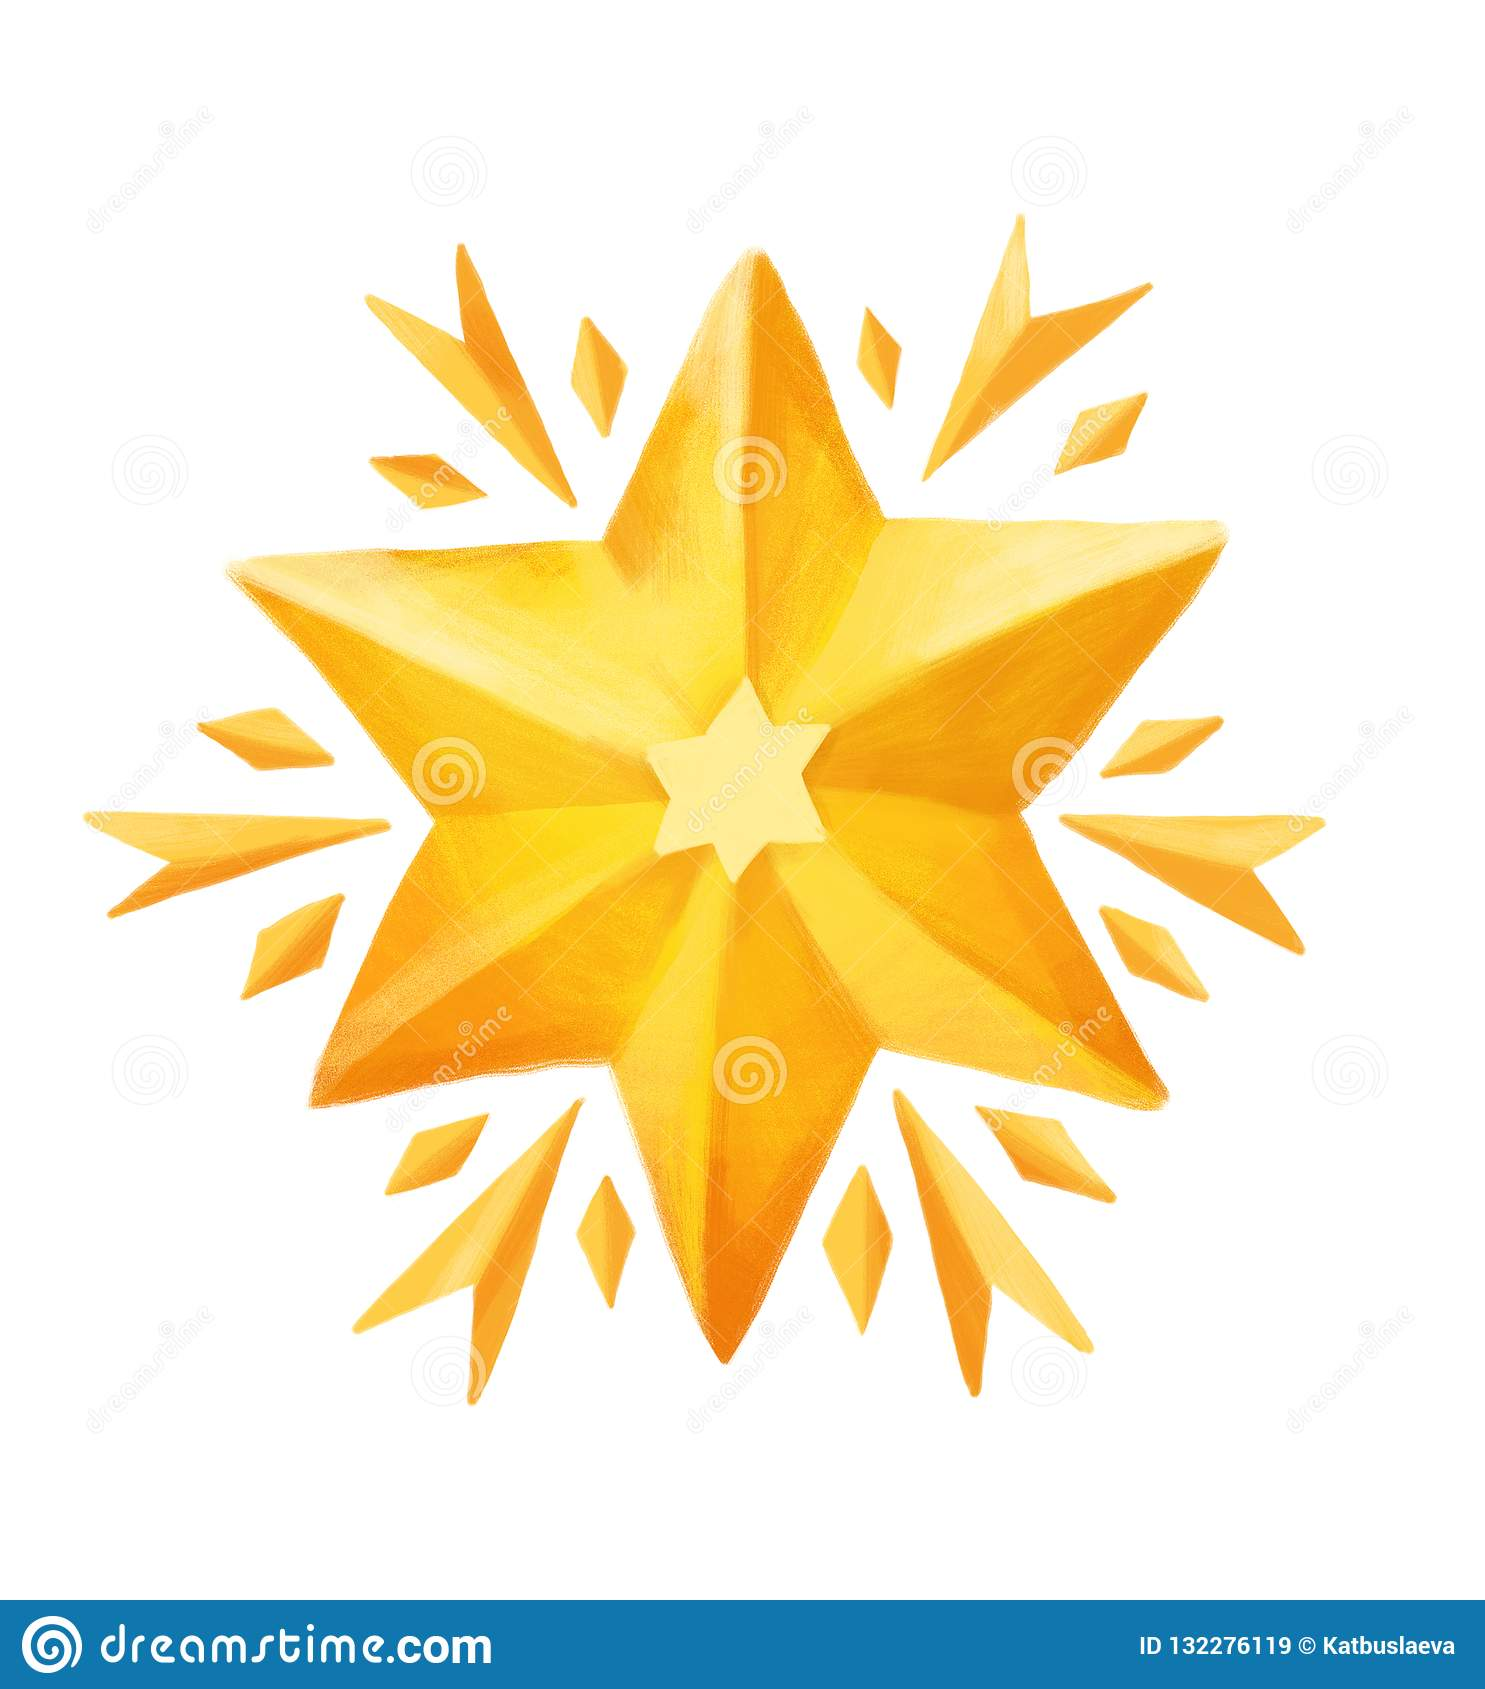 Christmas Scene Drawing For Kids.Golden Christmas Star Drawing In Kids Style For Greeting